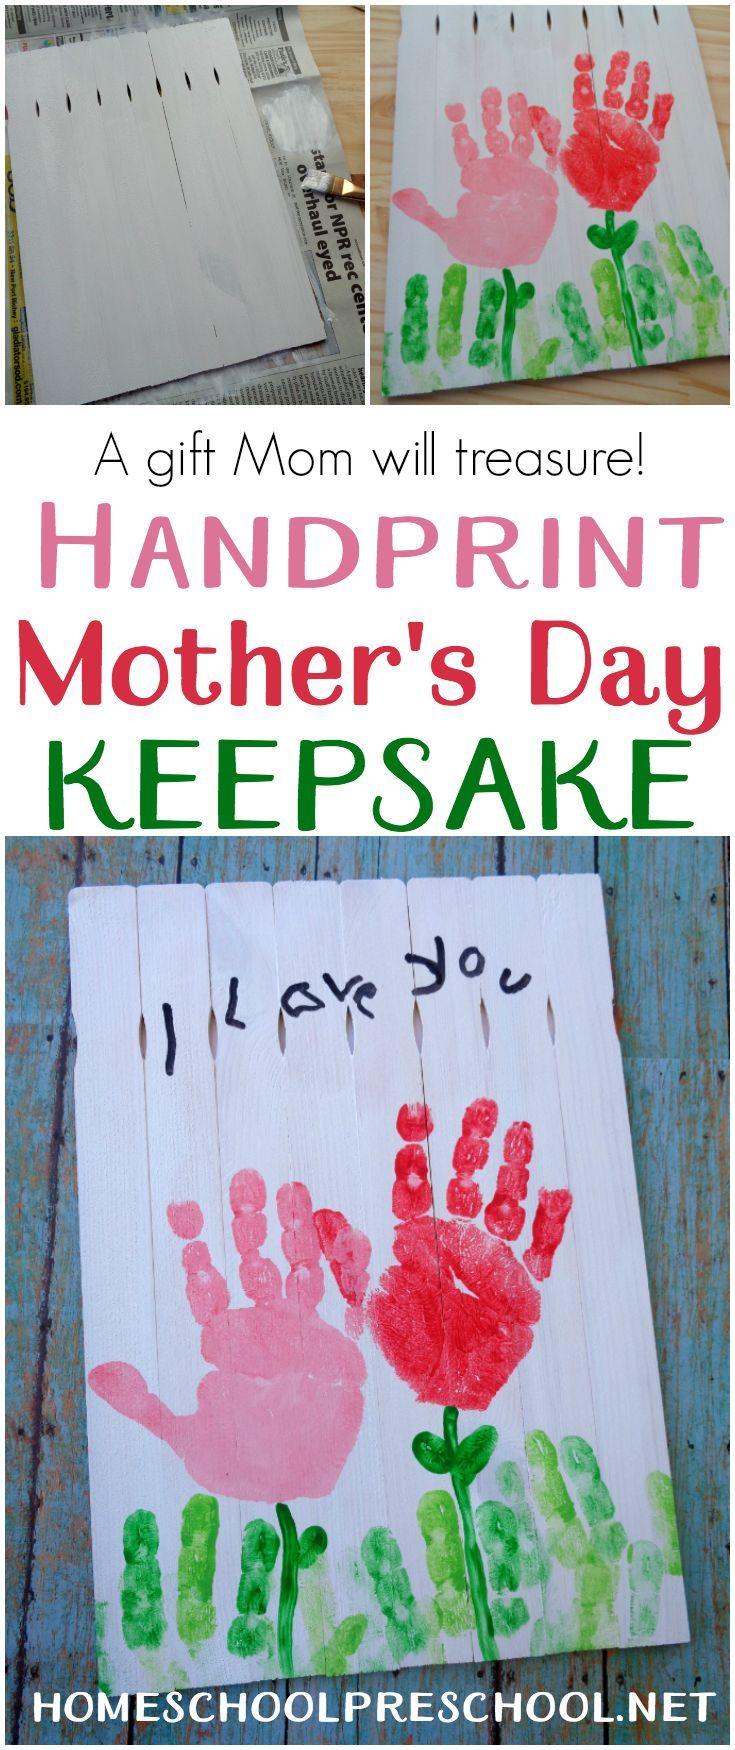 Young kids love making gifts for others. Here's a Mother's Day craft that is sure to become a treasured keepsake for many years to come. via @homeschlprek